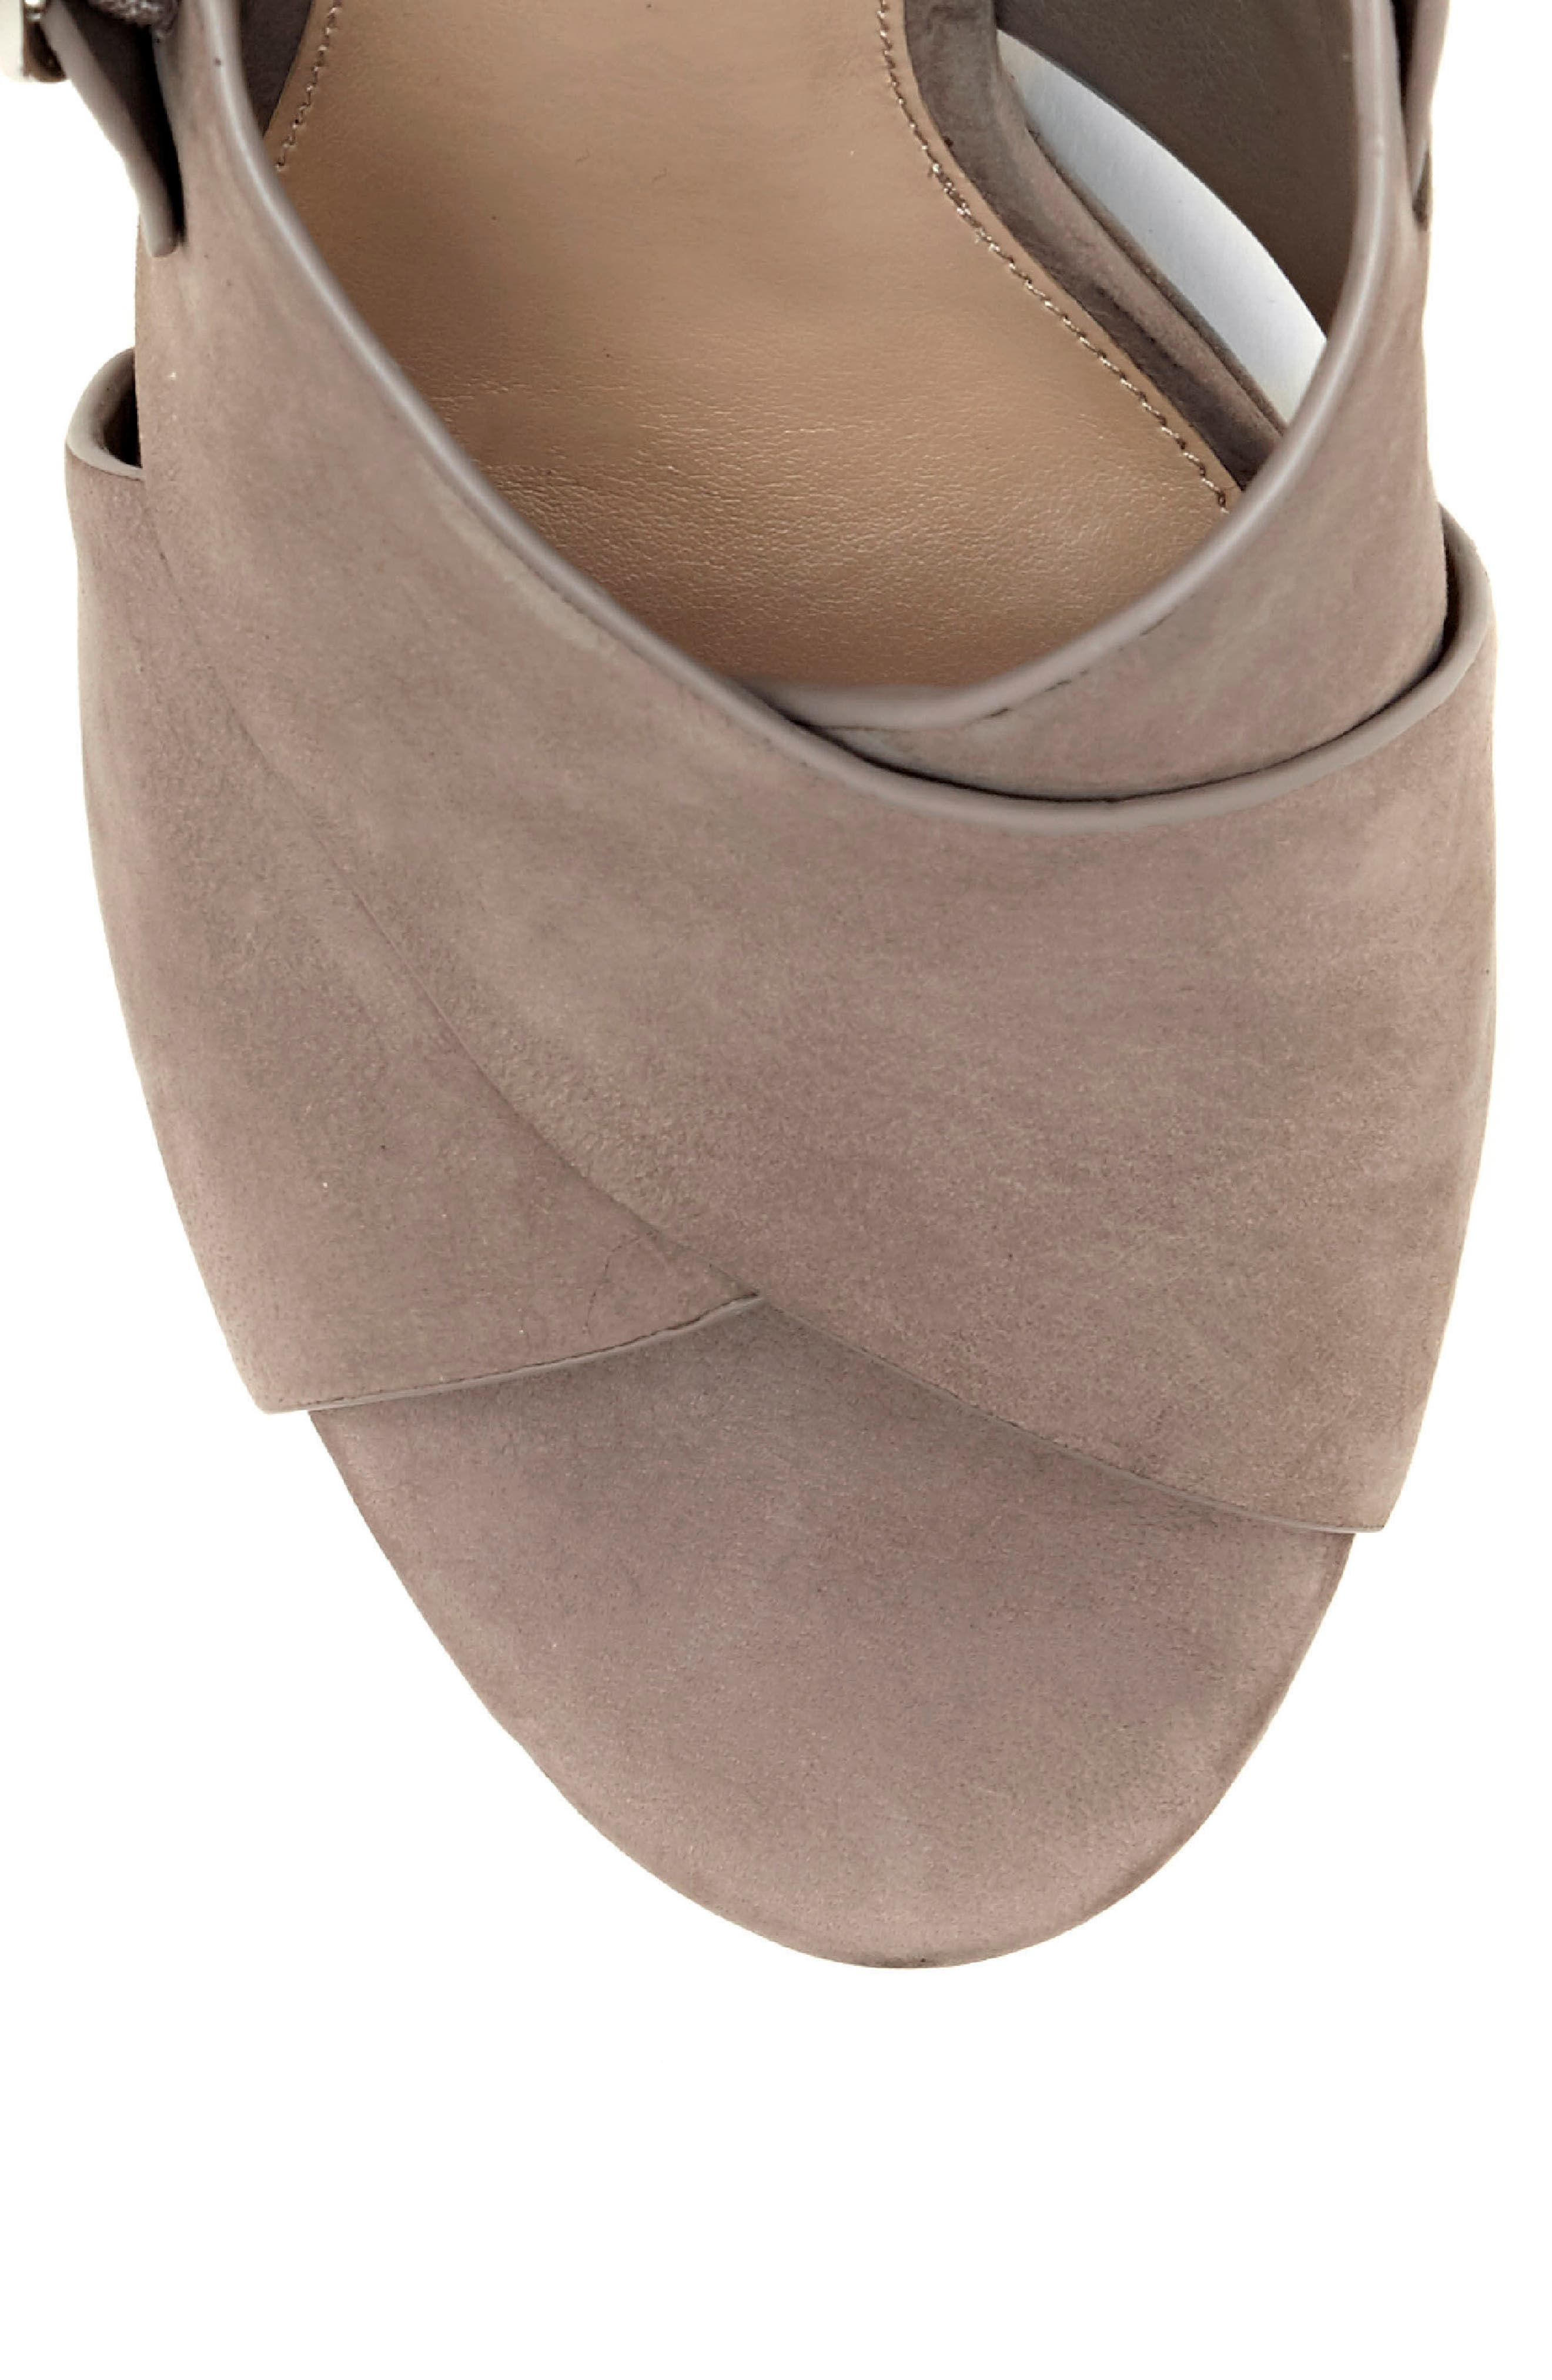 Iteena Wedge Sandal,                             Alternate thumbnail 8, color,                             Hippo Grey Leather